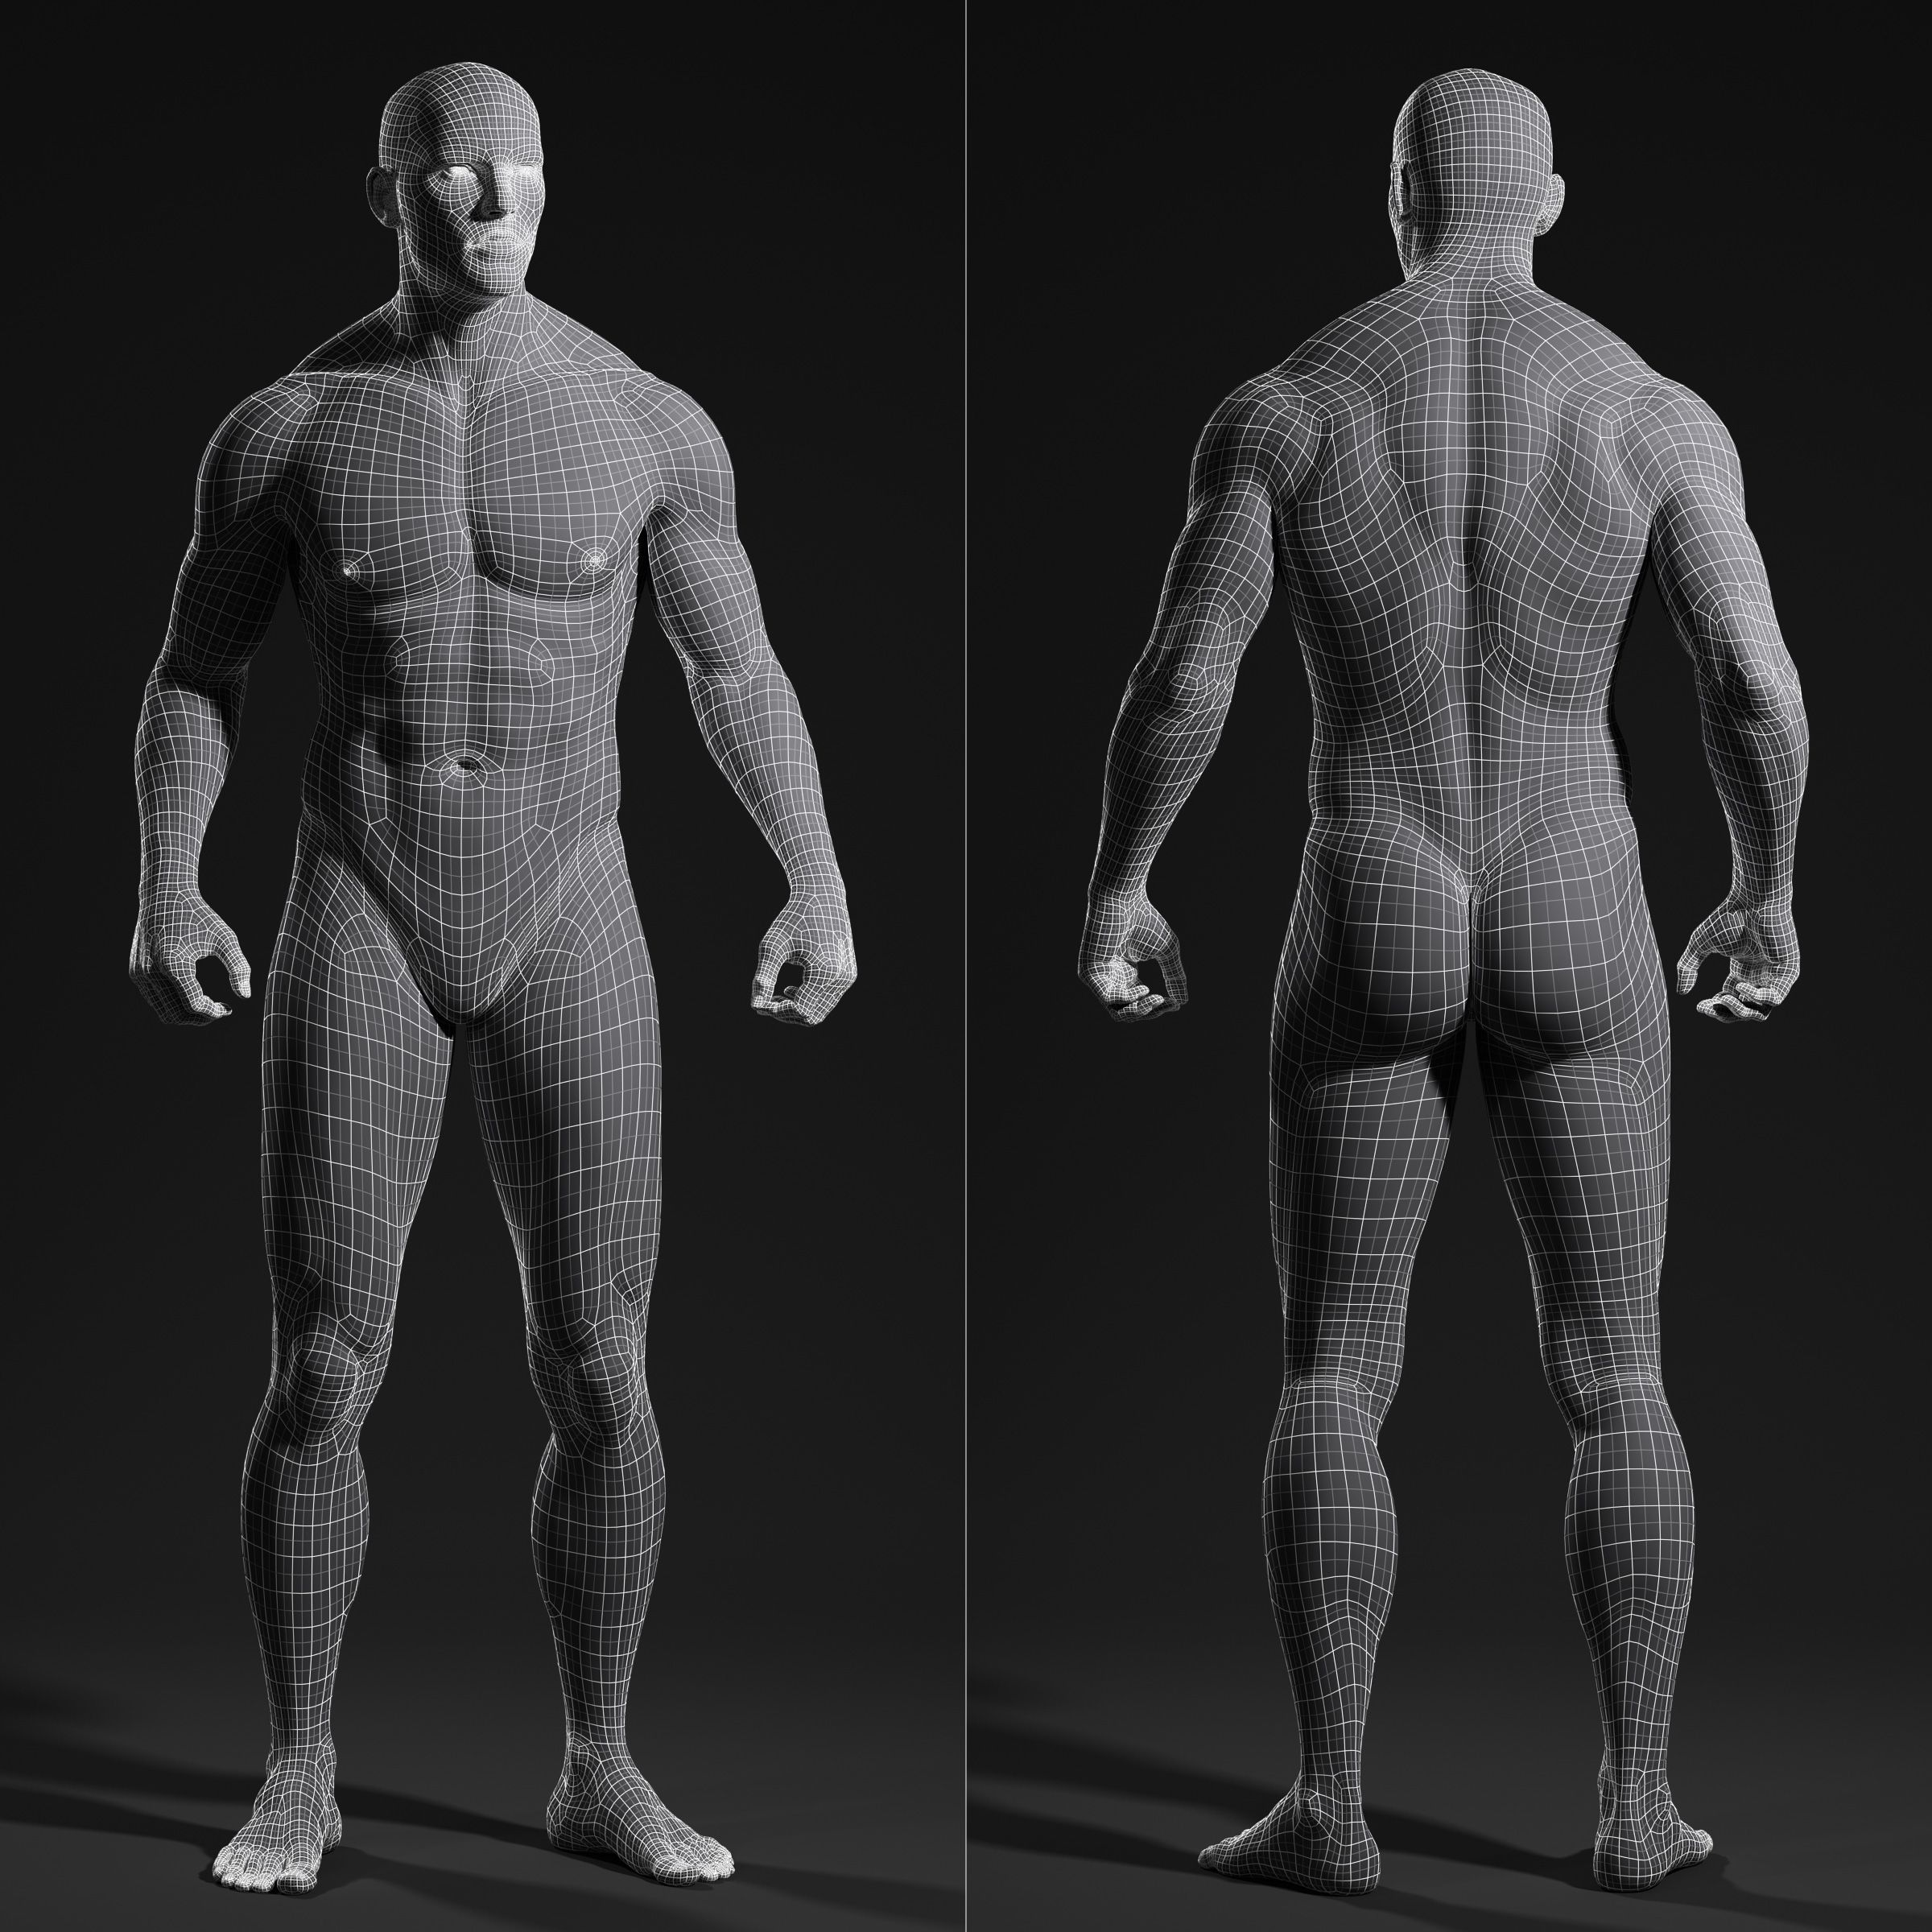 Pin by Brian Kenney 3D on 3D Inspired in 2018 | Pinterest | Anatomy ...